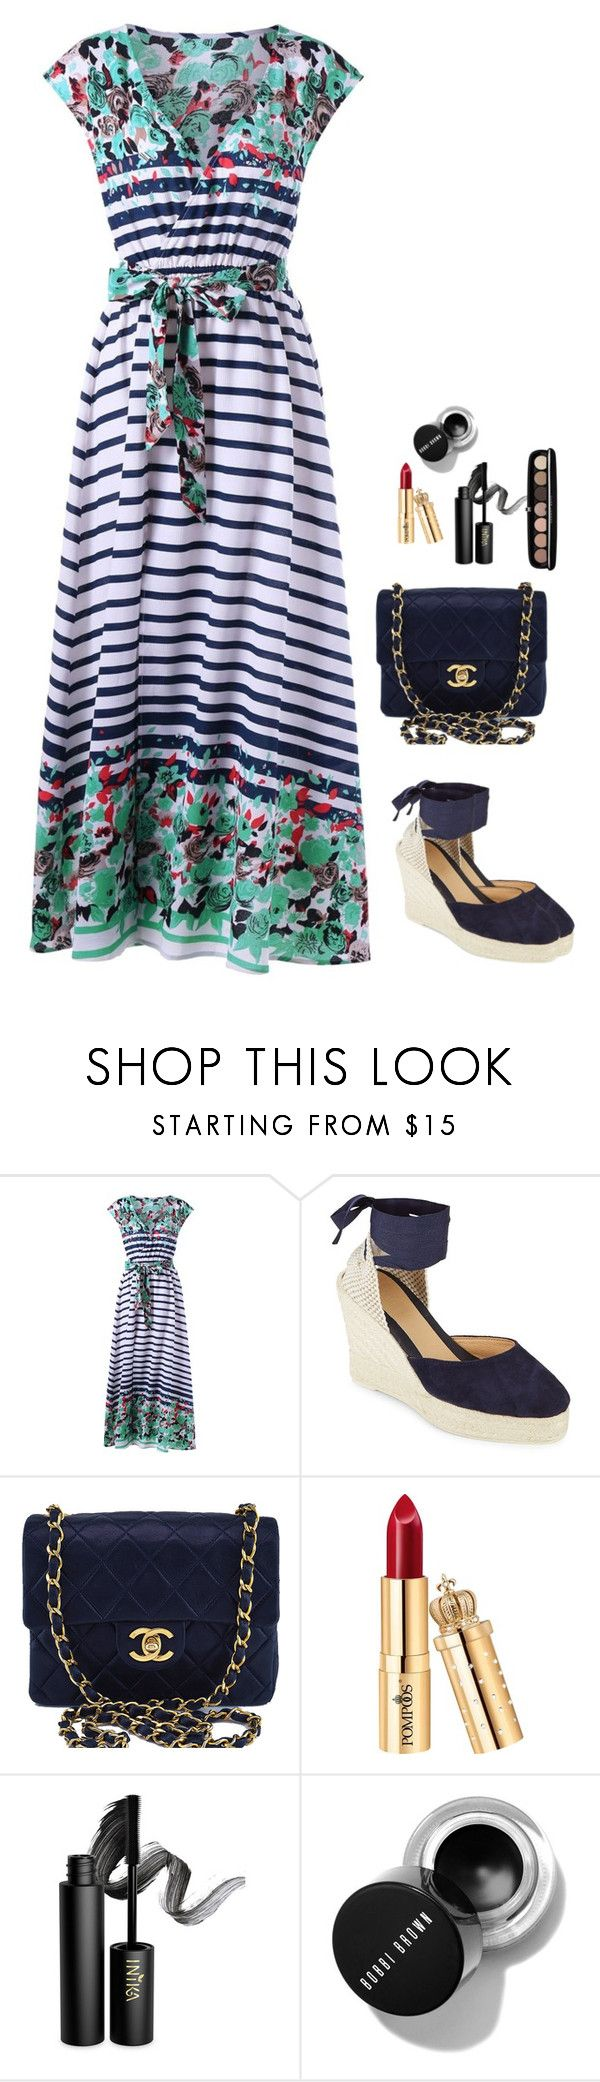 """""""Summer time"""" by monika1555 on Polyvore featuring Manebí, Chanel, INIKA and Marc Jacobs"""